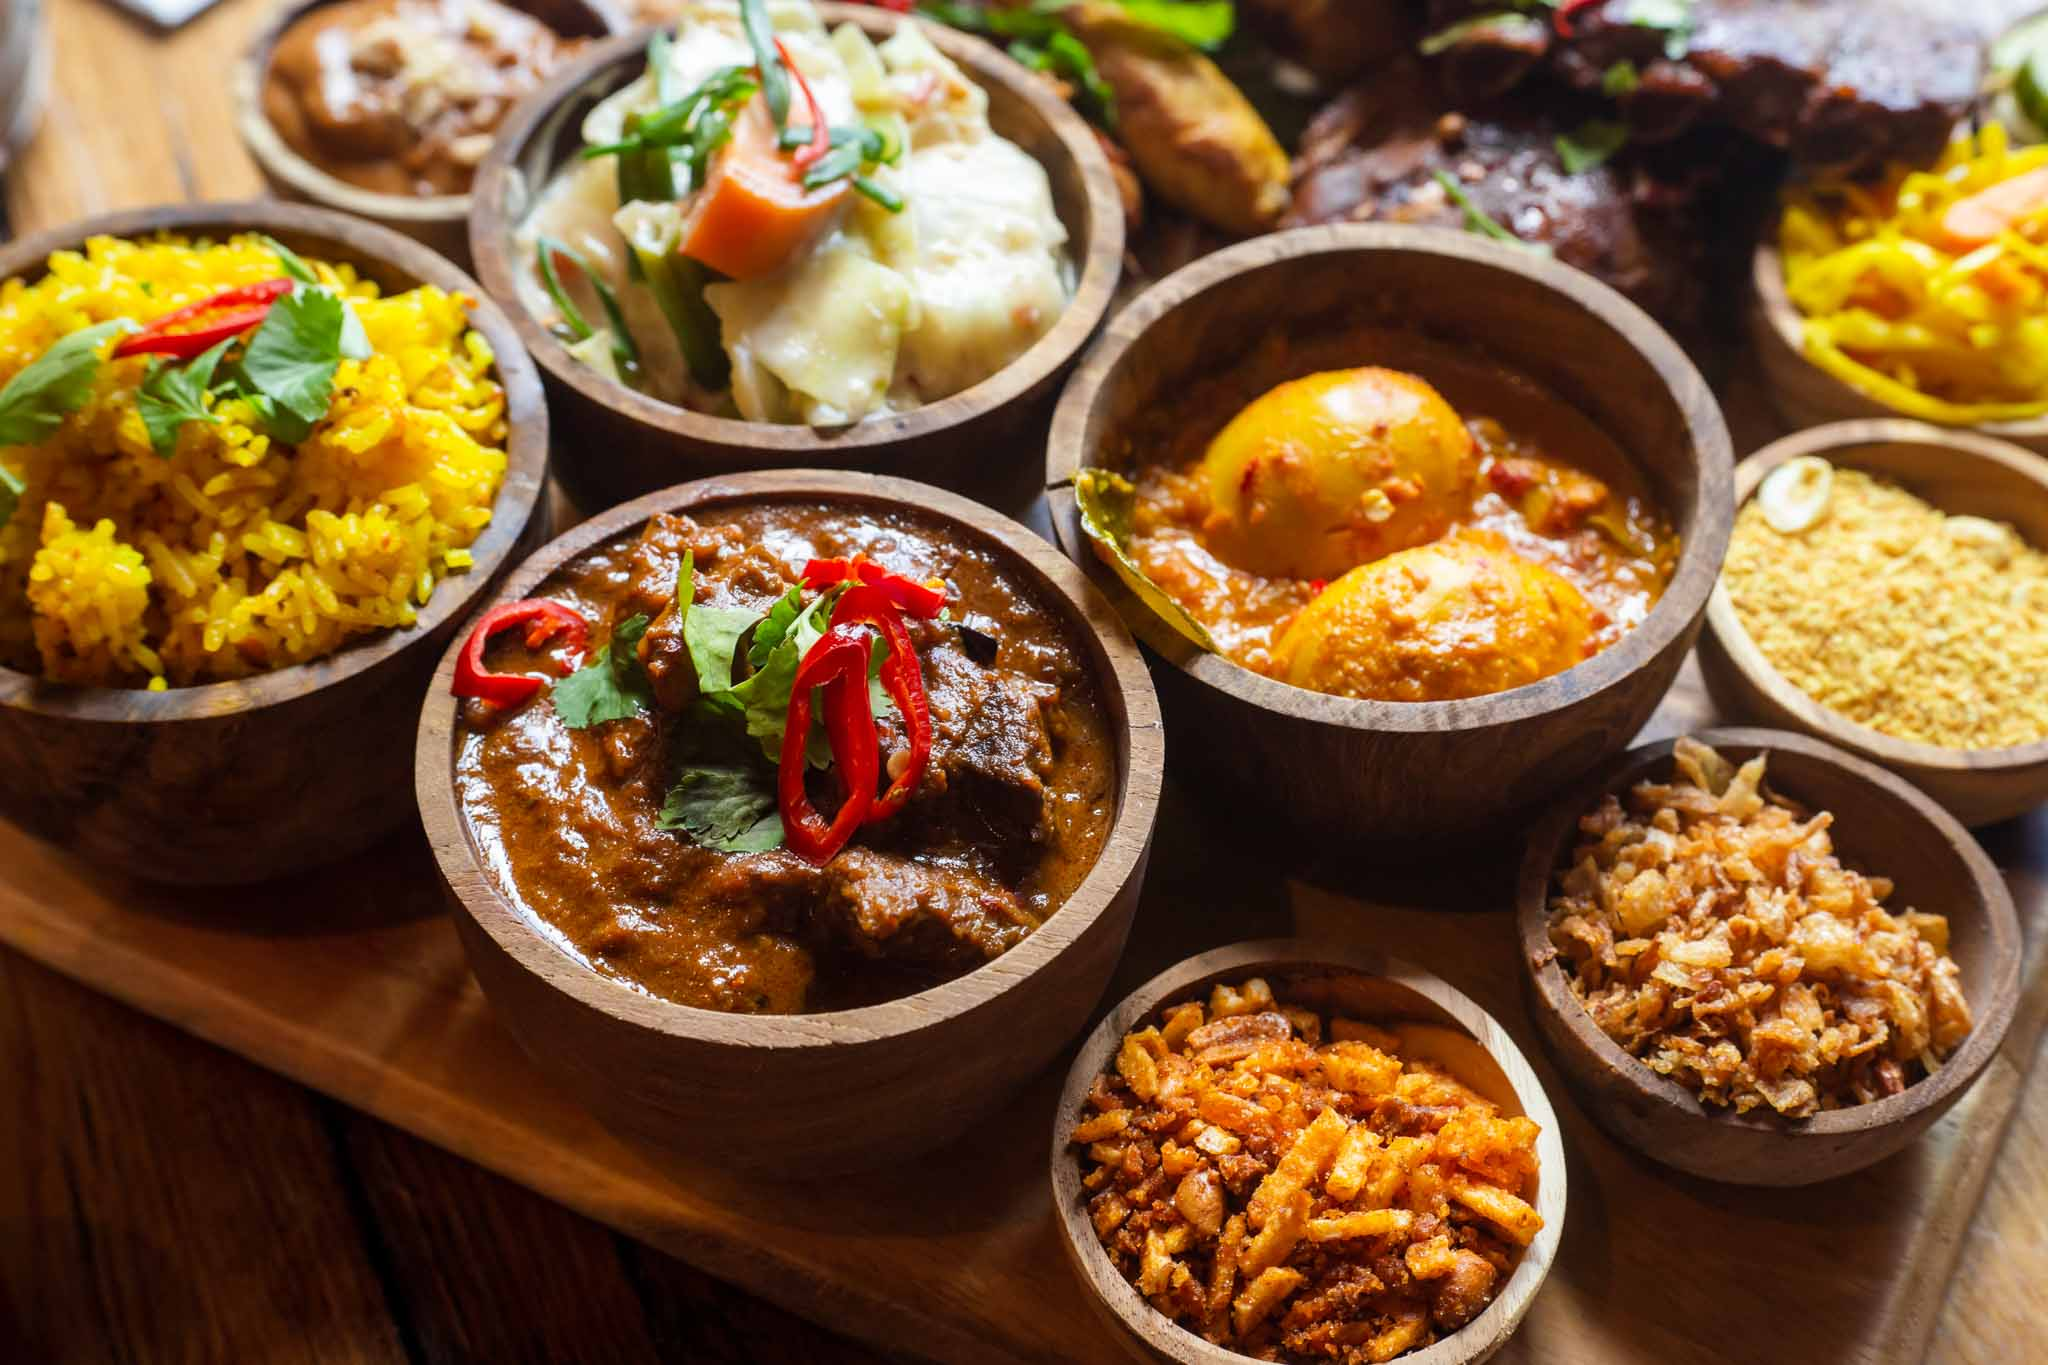 Closeup of Indonesian dishes on the table